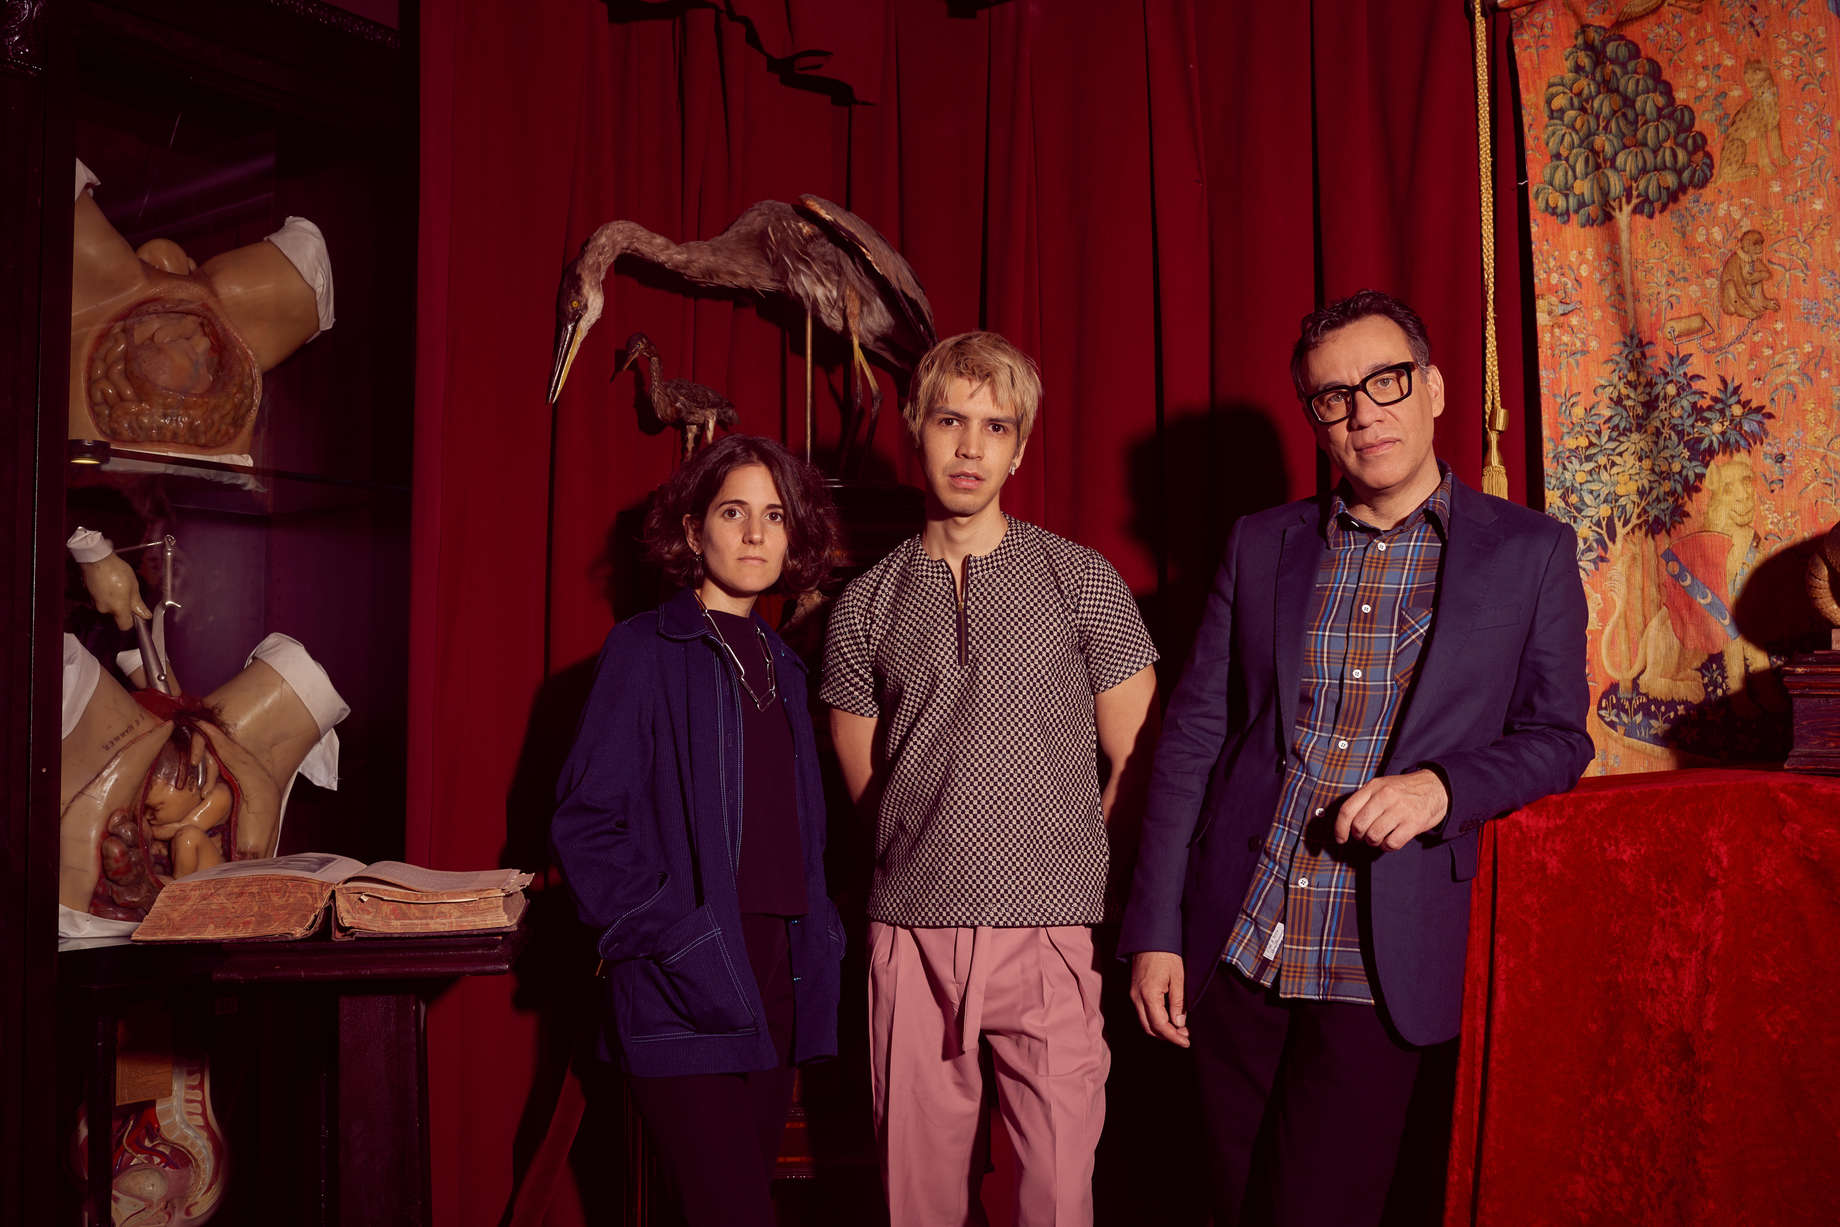 Los Espookys: Fred Armisen and Cast Talk Their Strange New